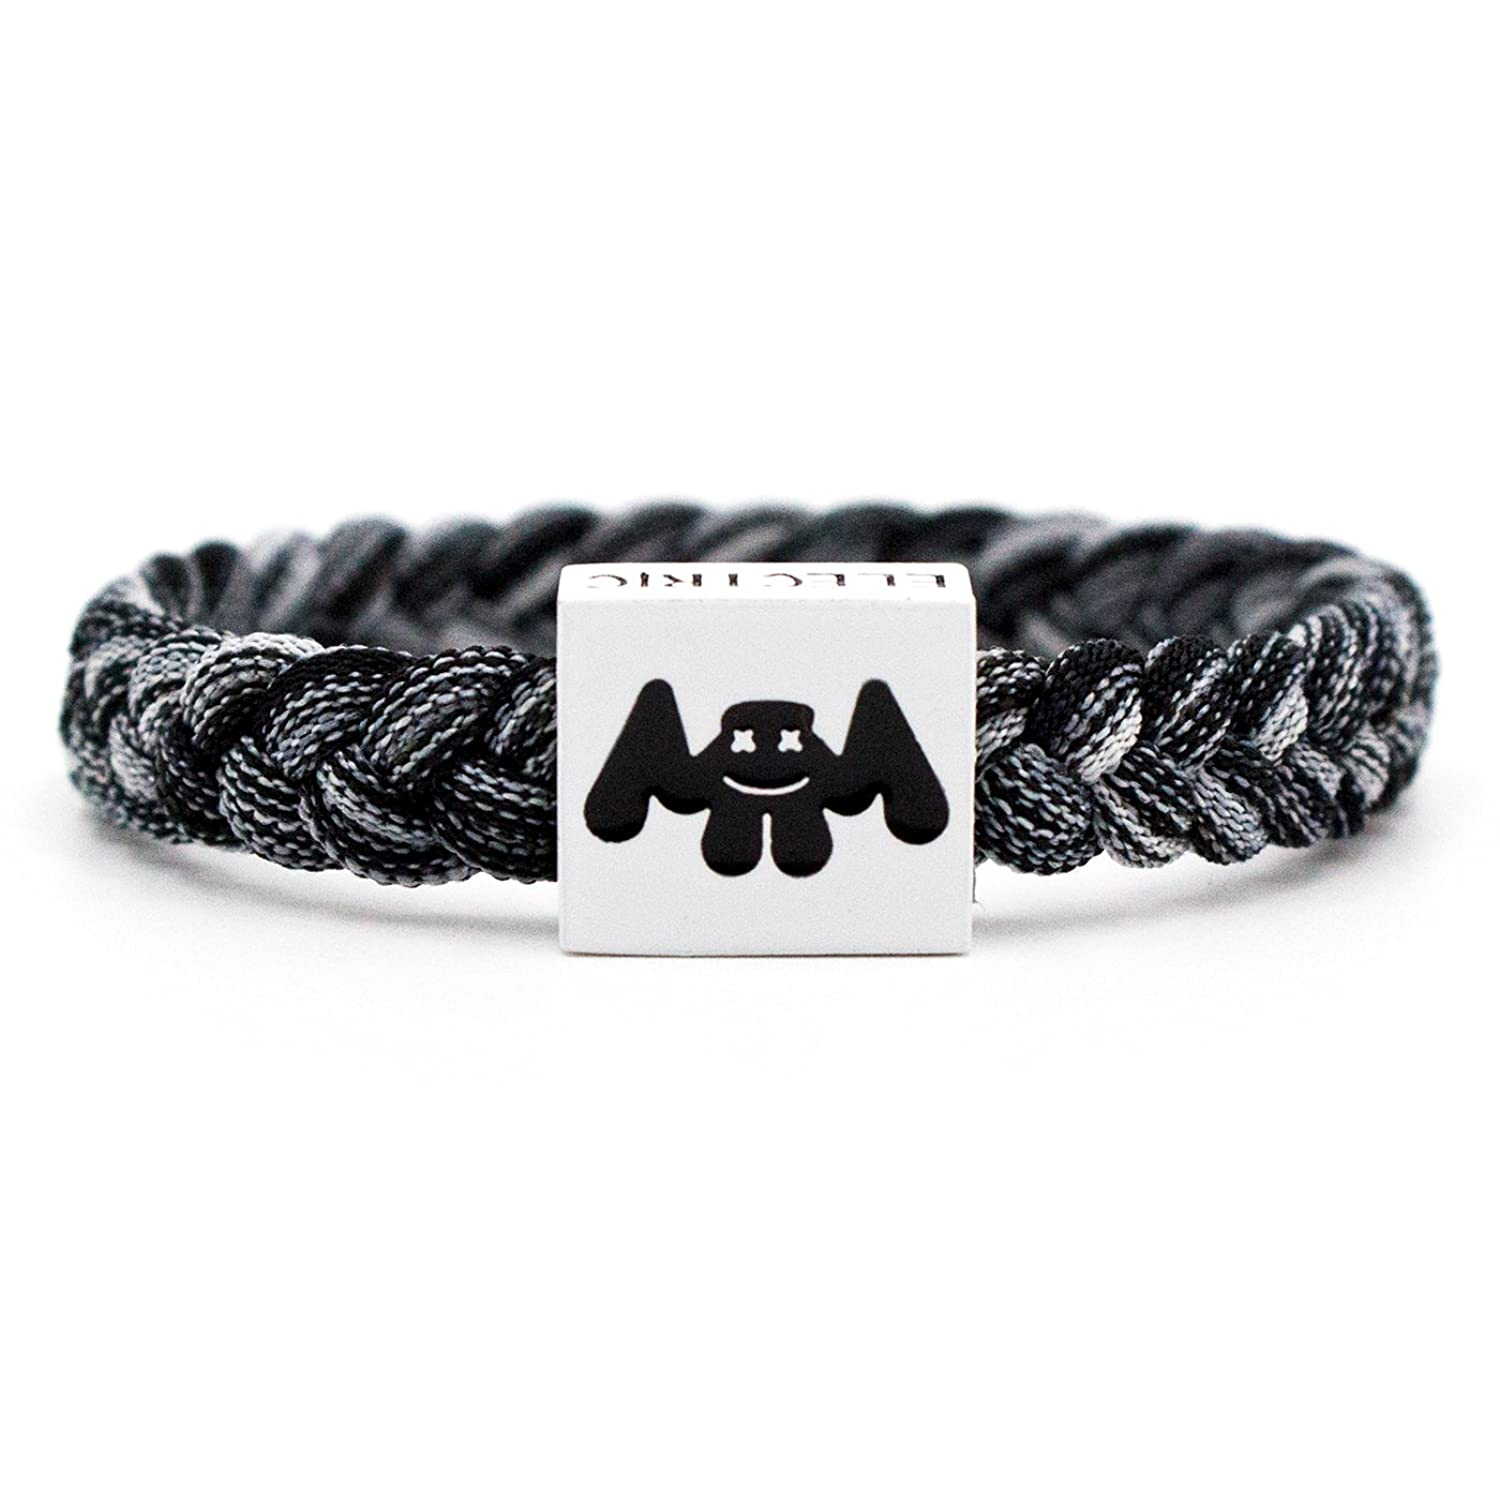 Marshmello version 2.0 fully adjustable multi-colored nylon bracelet by Electric Family